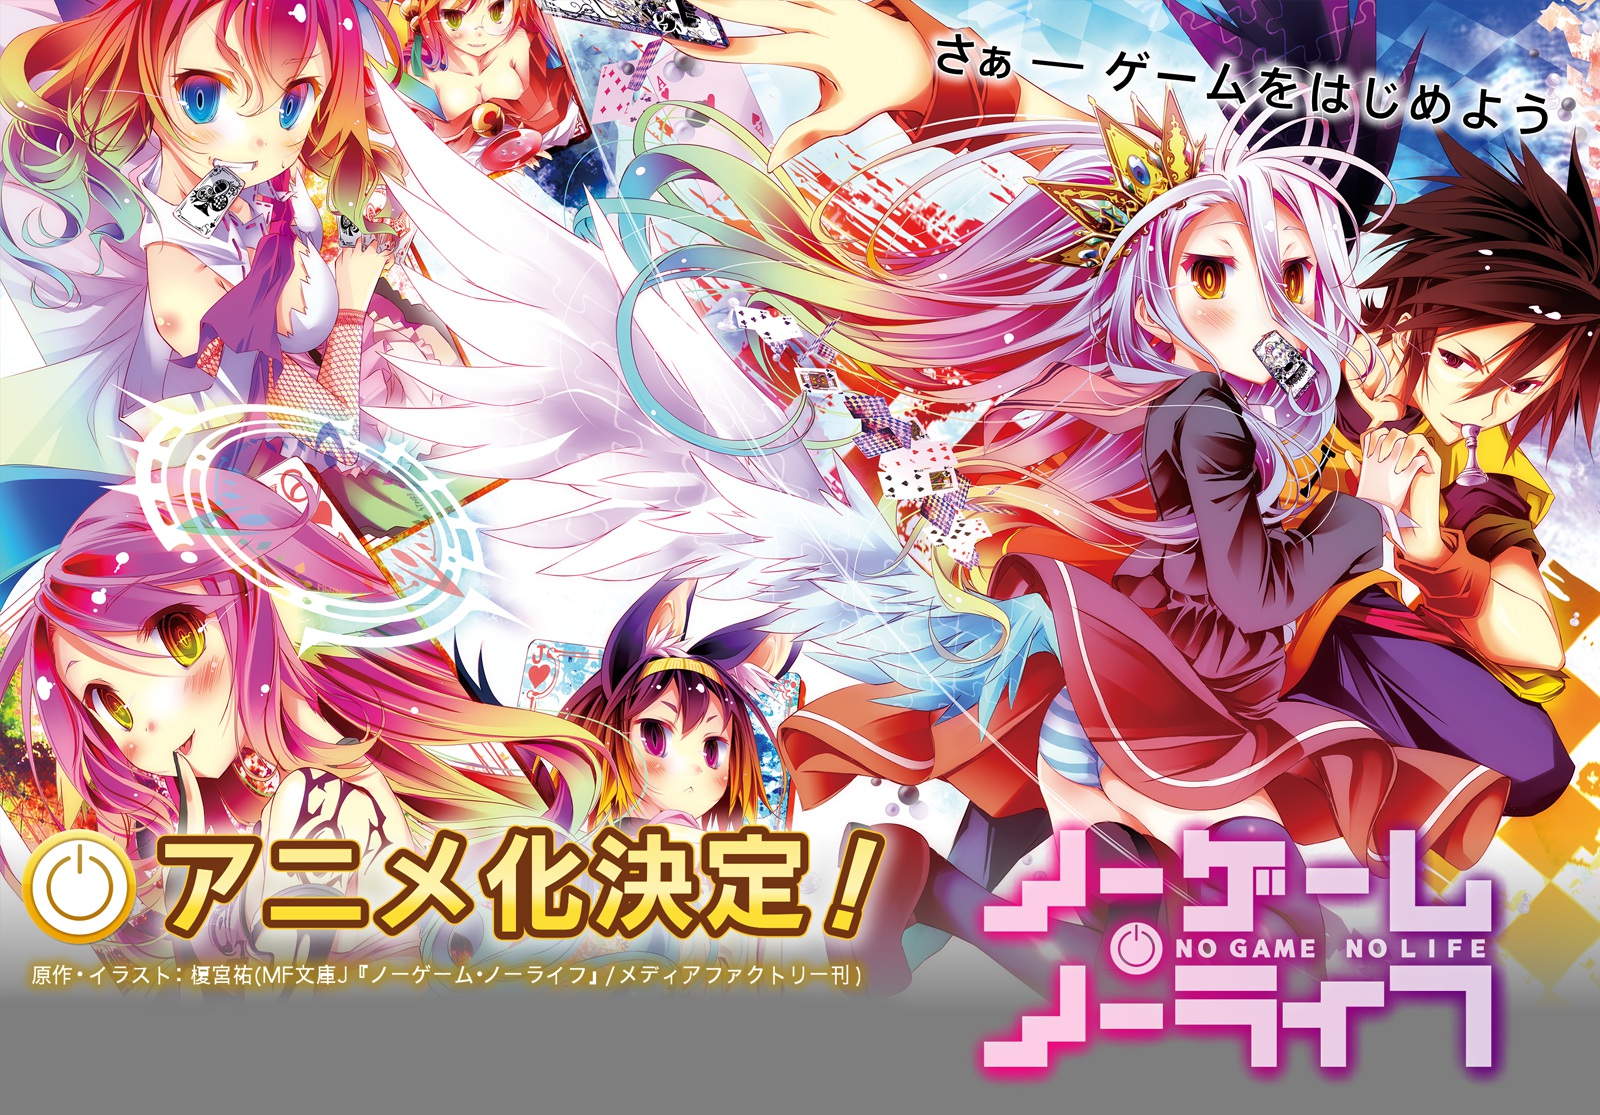 Download Wallpaper From Anime No Game No Life With Tags Linux